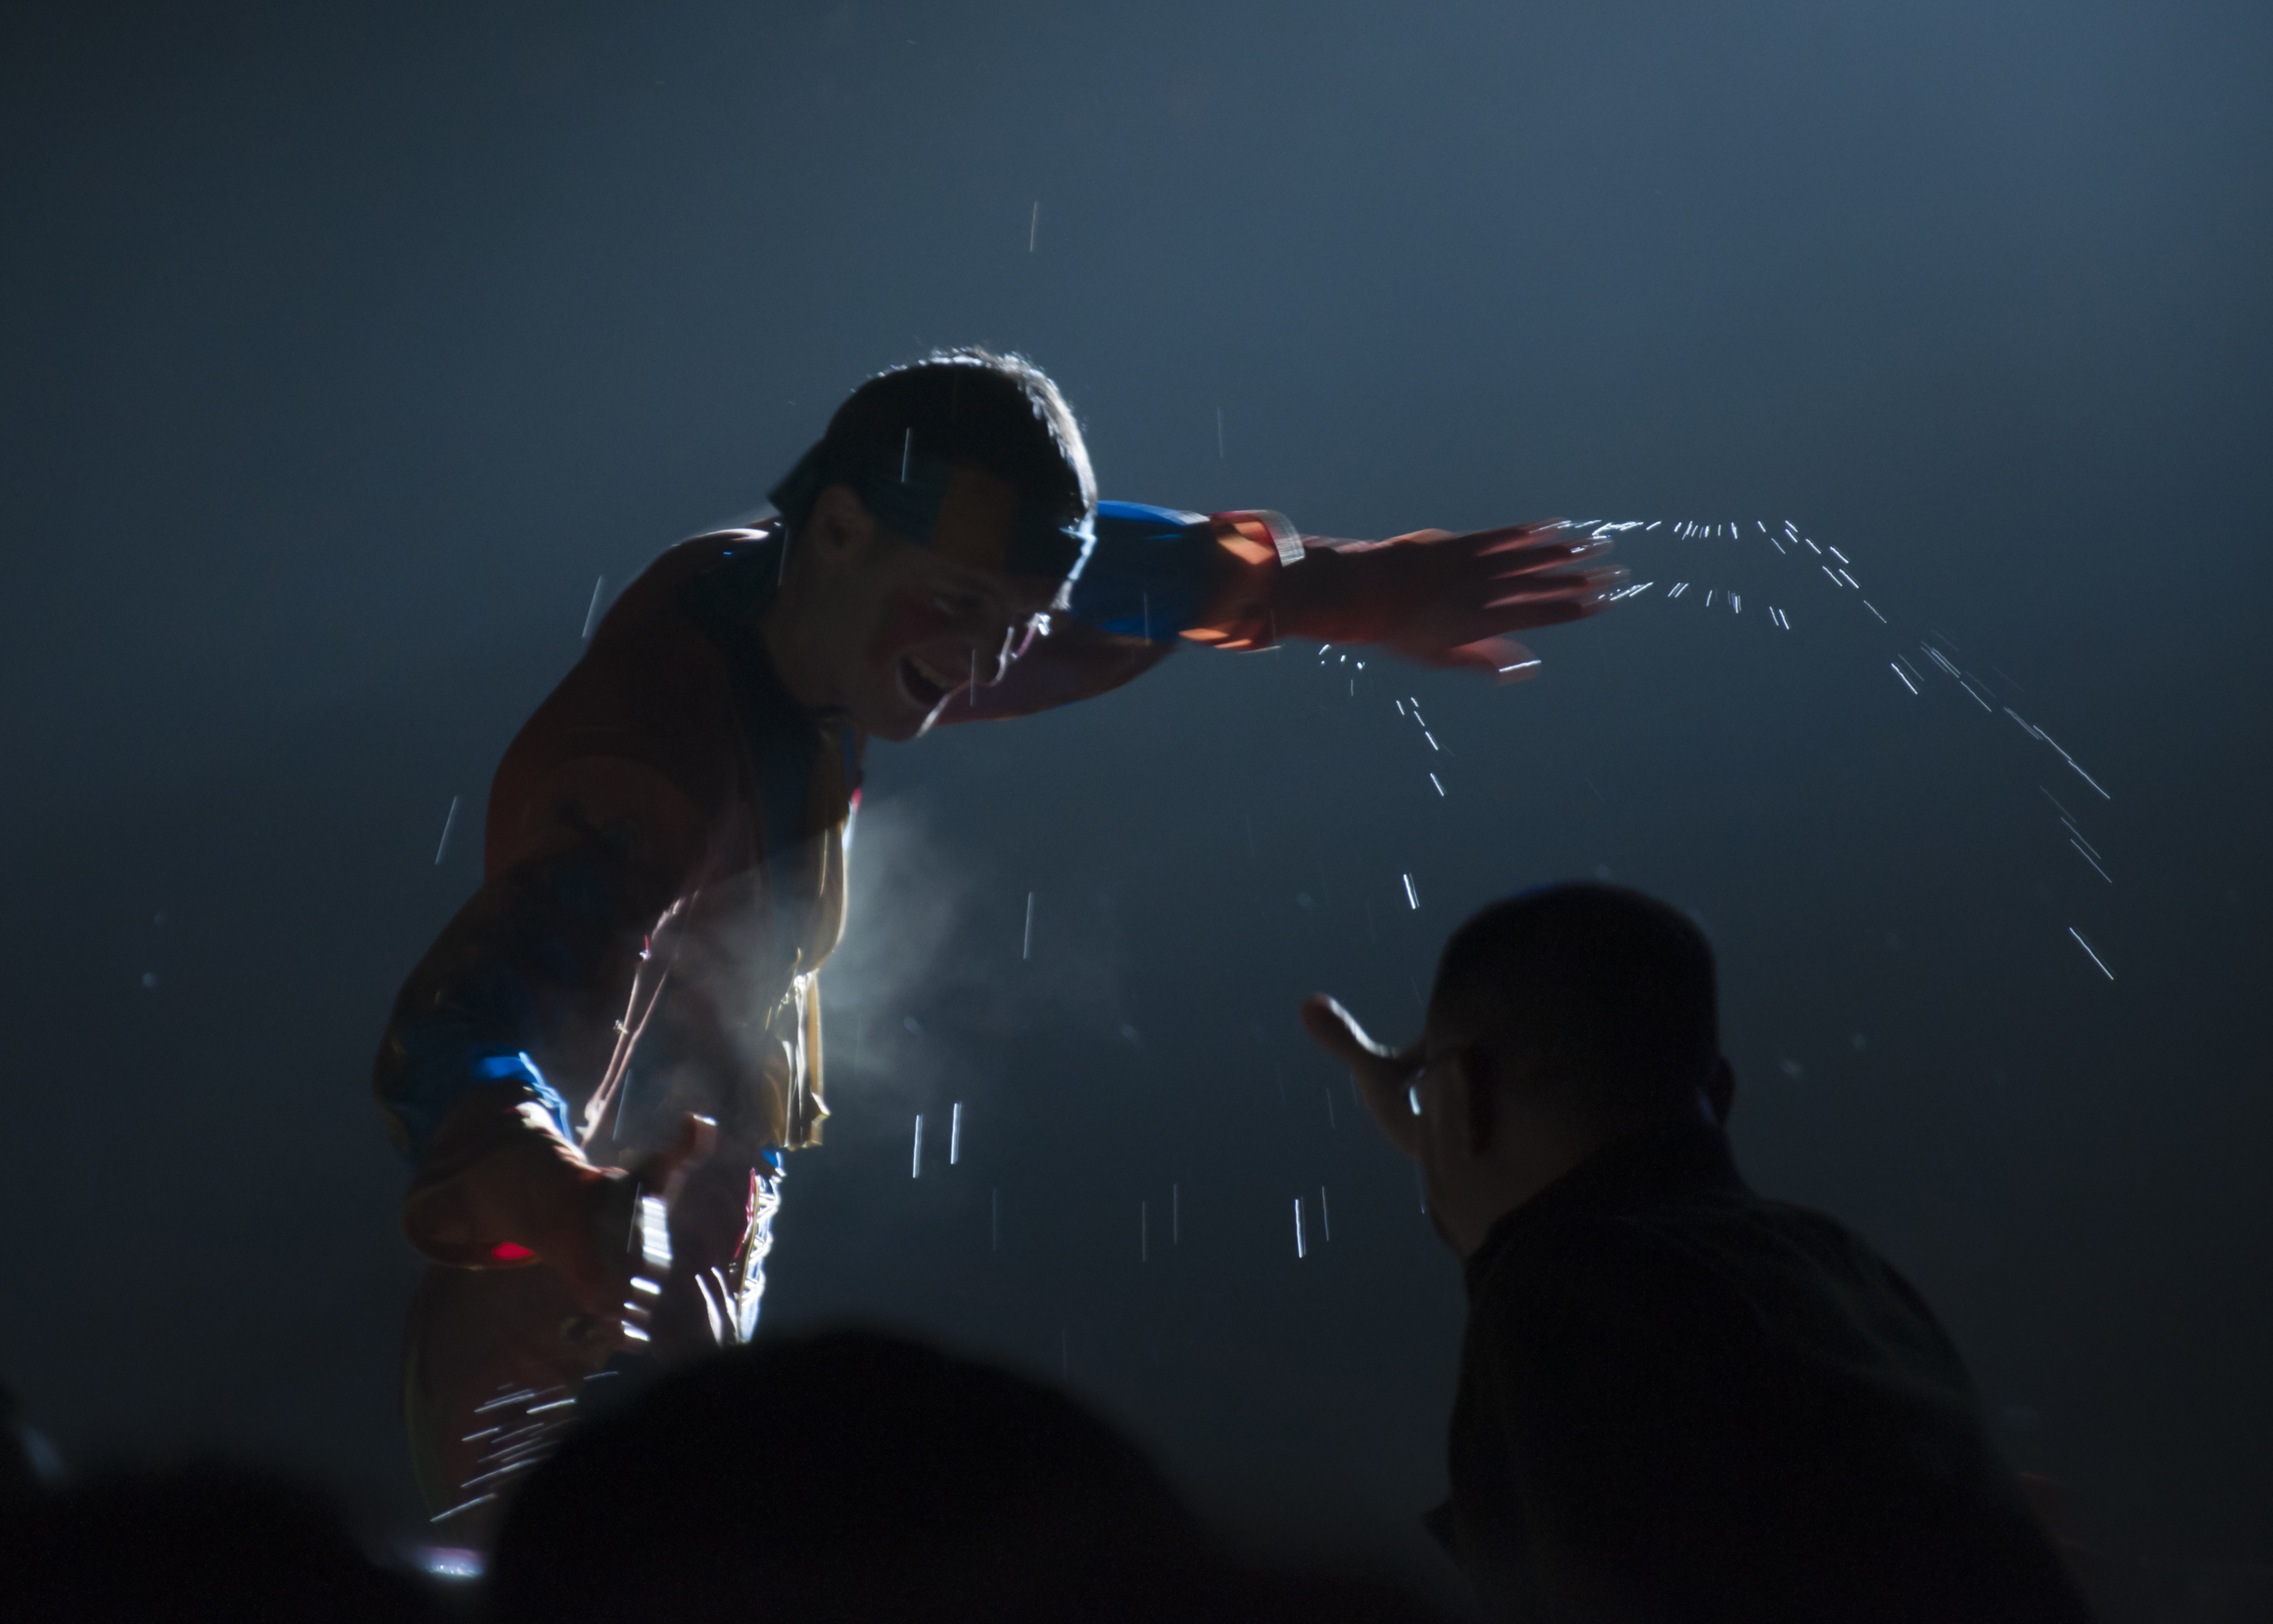 A clown interacting with the audience at Chimelong International Circus, Guangzhou